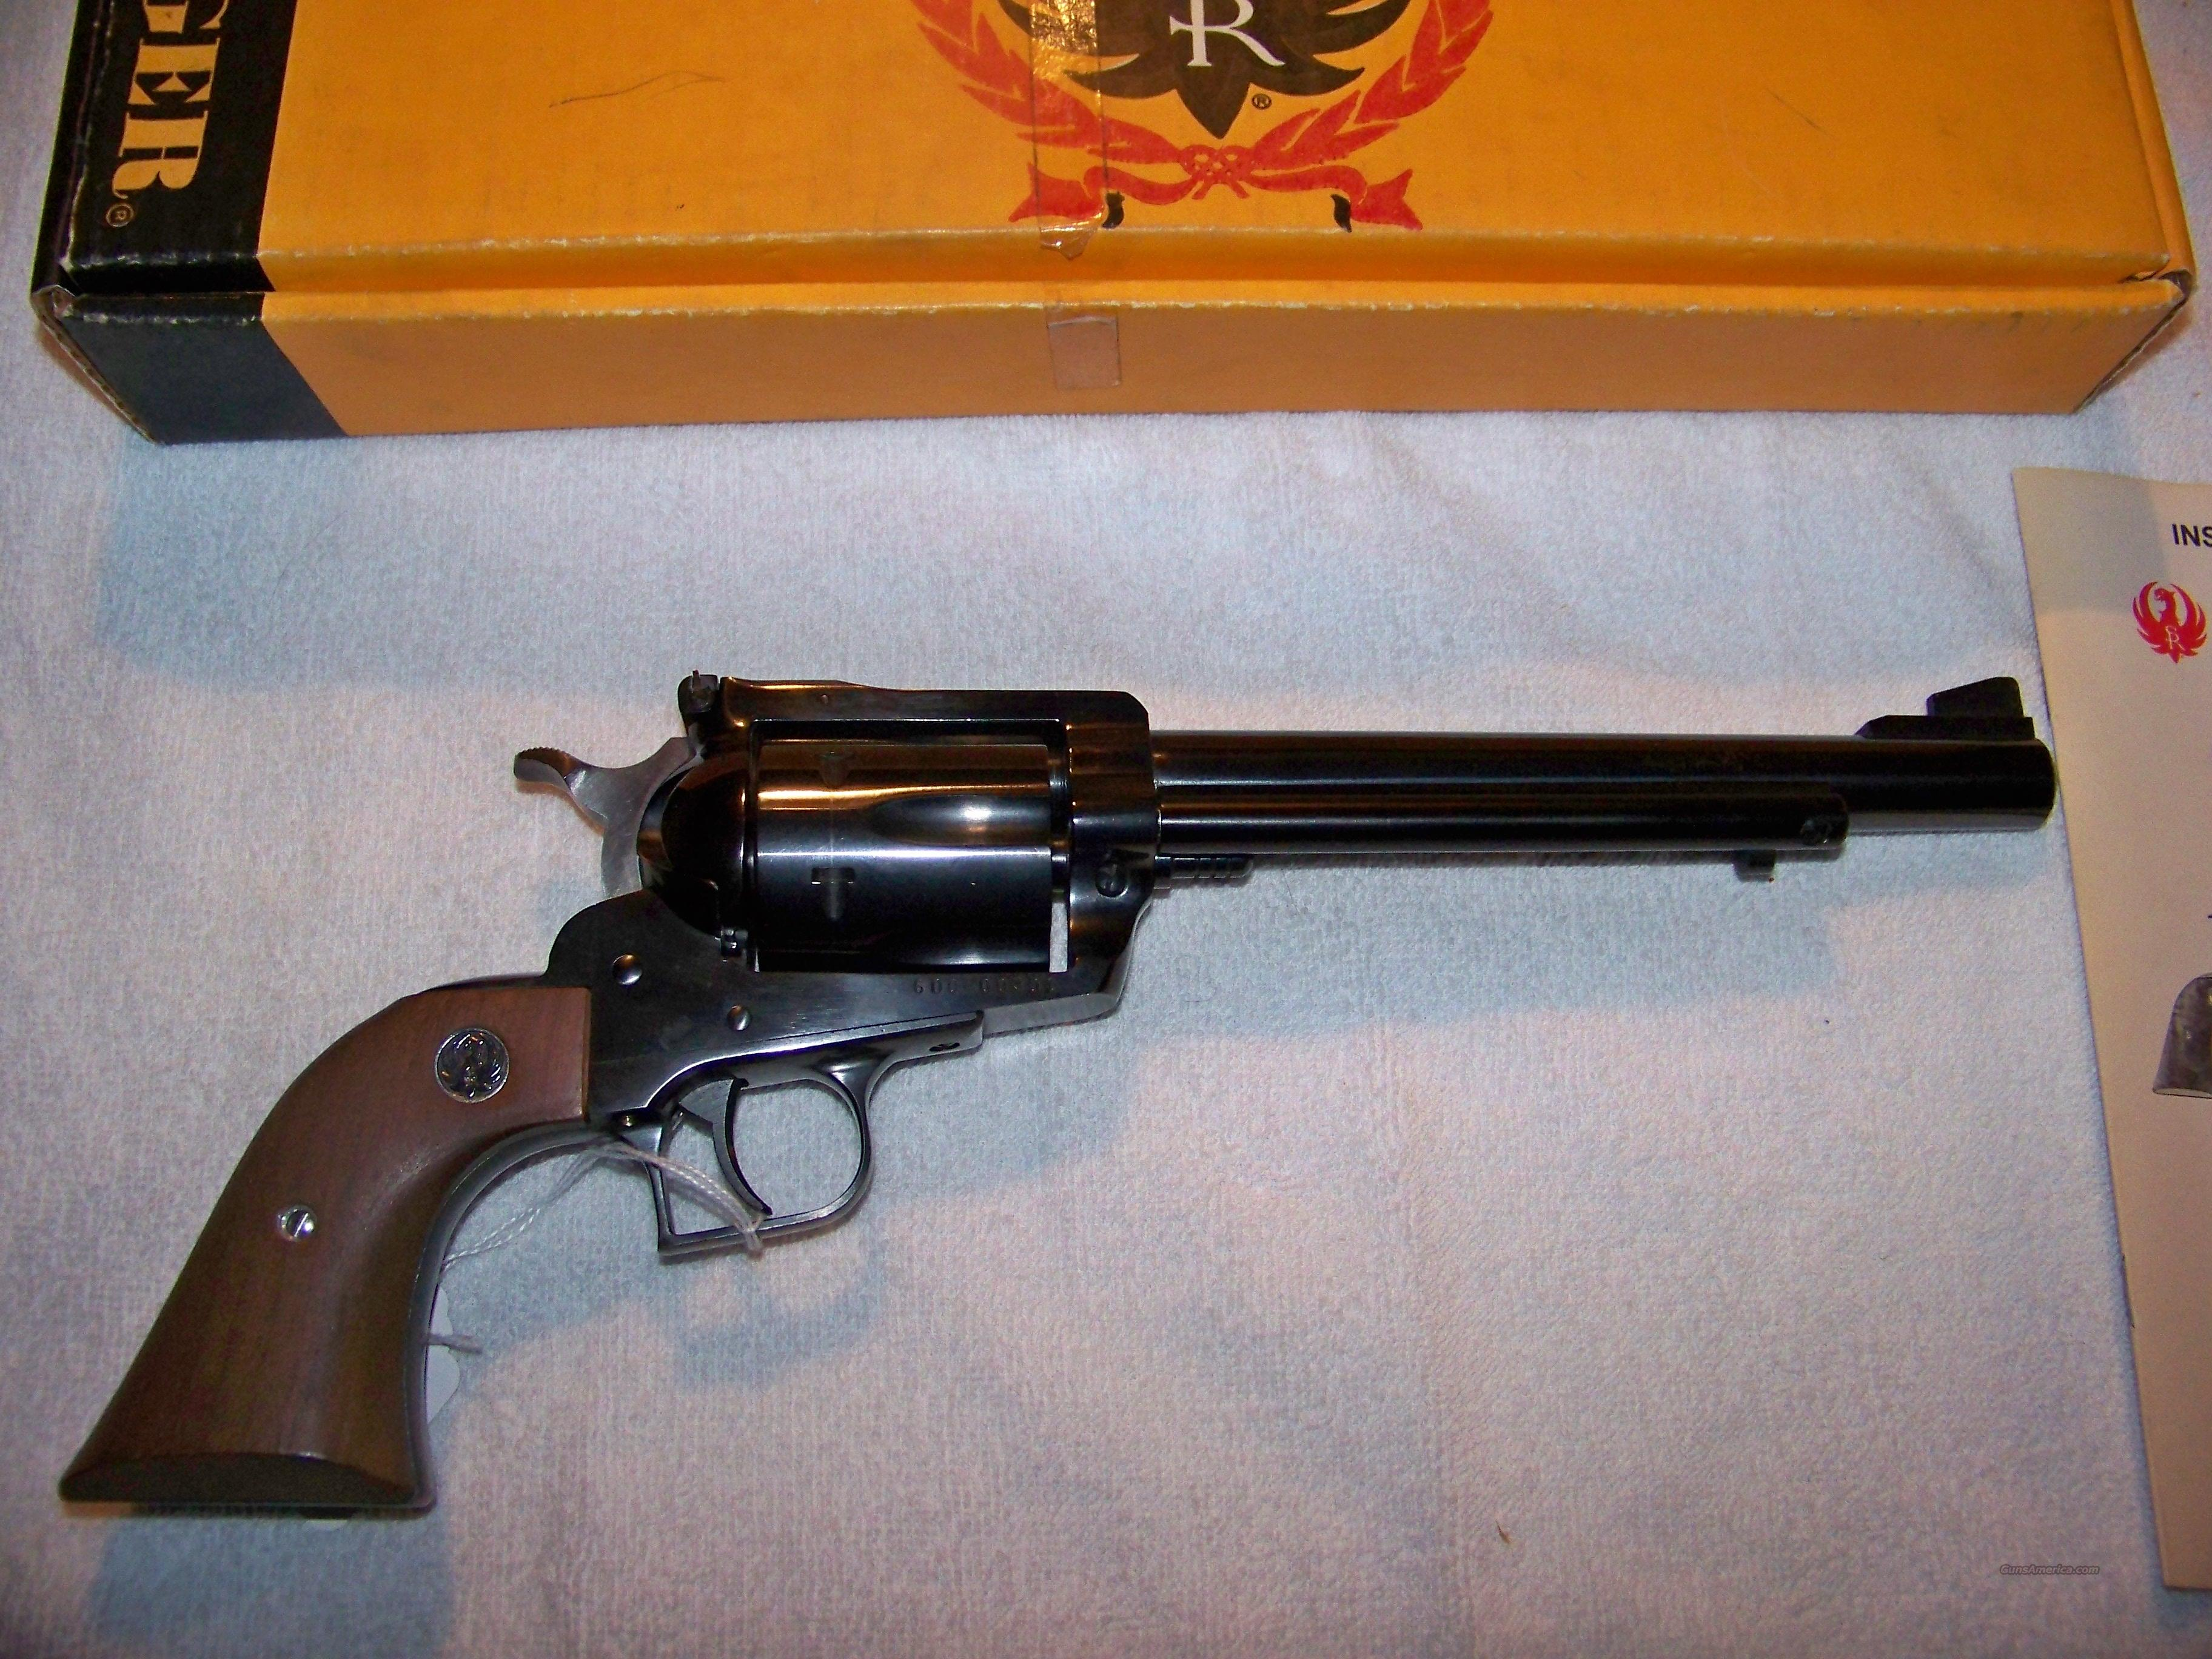 RUGER 357 MAXIMUM  Guns > Pistols > Ruger Single Action Revolvers > Blackhawk Type